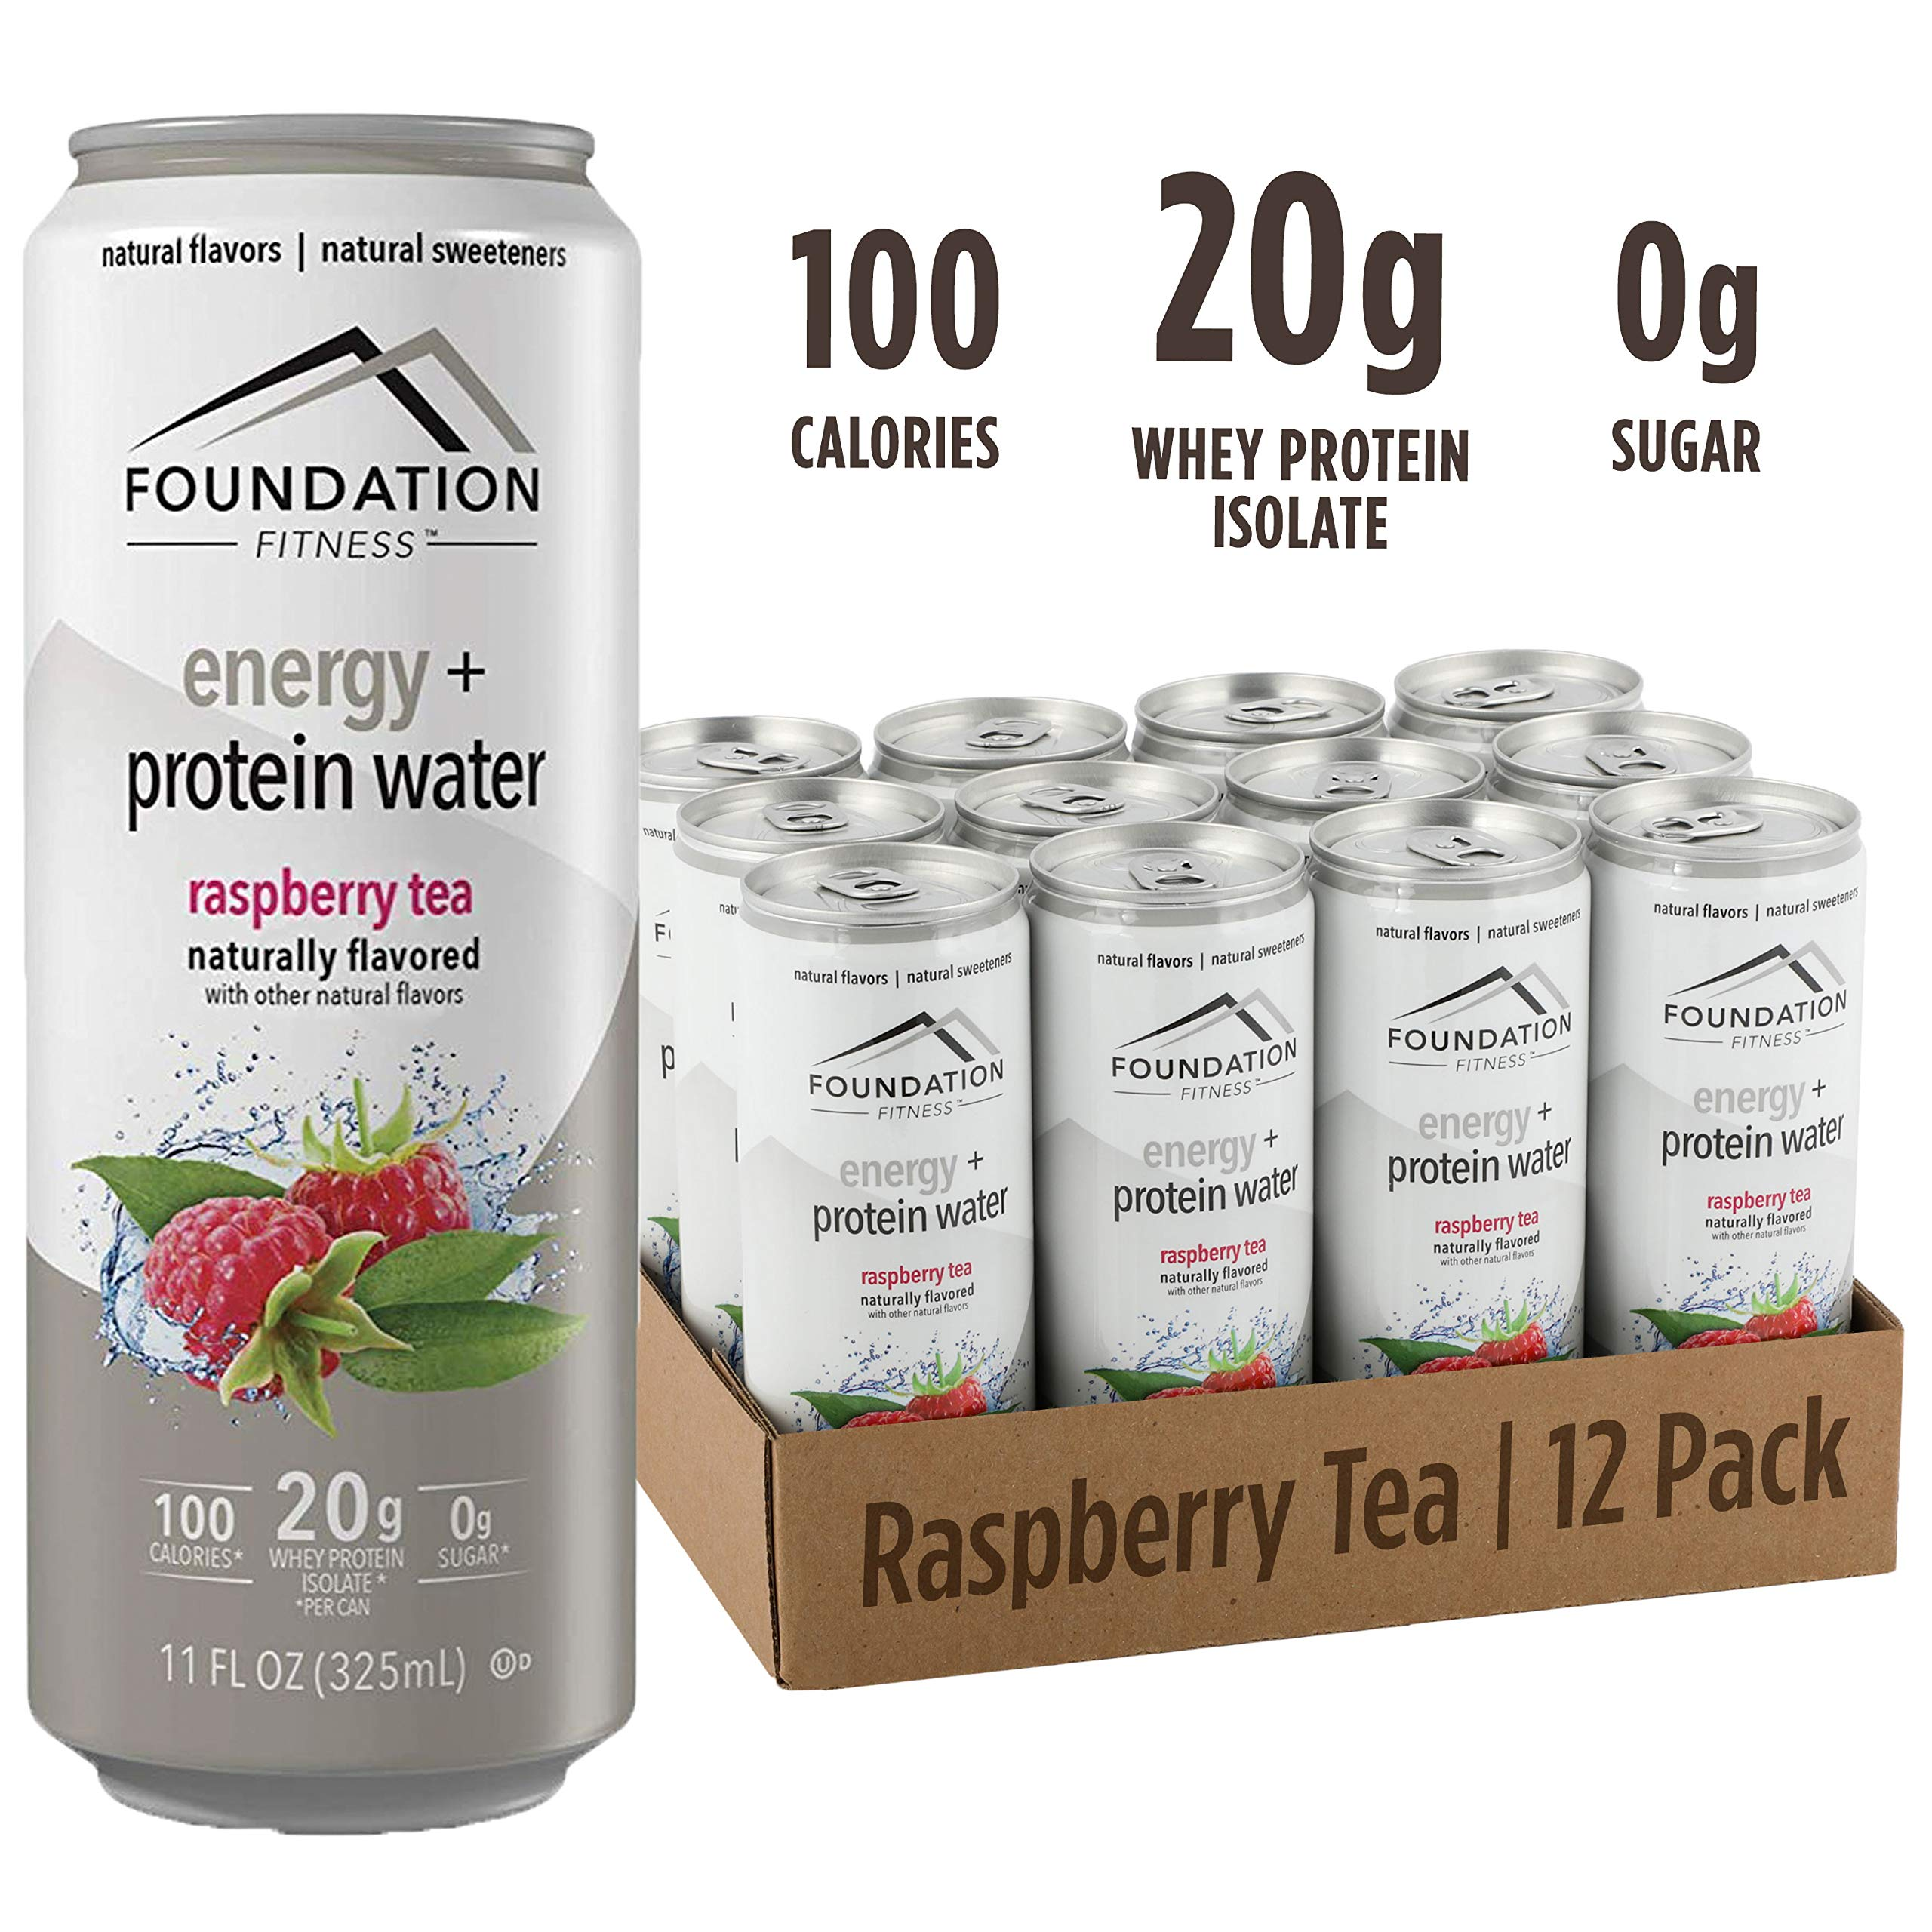 Foundation Fitness Energy & Protein Water, Raspberry Tea, Ready to Drink, 20g Protein, Natural Flavors & Sweetener, 0g Sugar, 11 fl oz, (Pack of 12) by Victor Allen